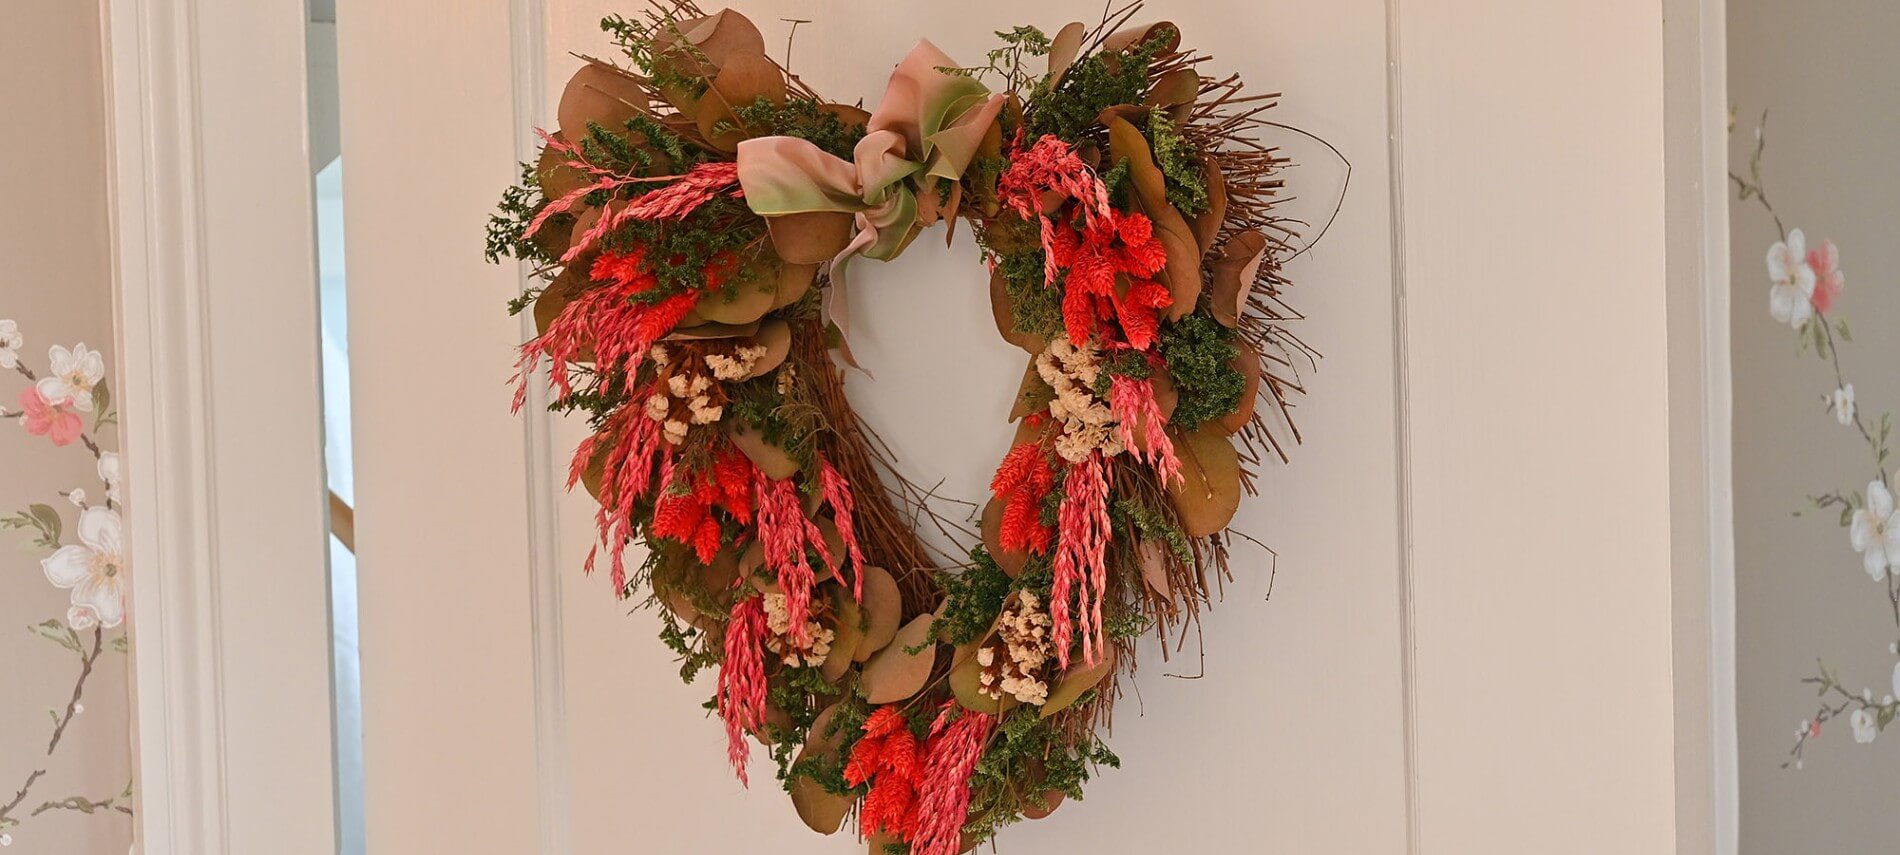 Wreath of red flowers and green leaves in the form of a heart hanging on a white door